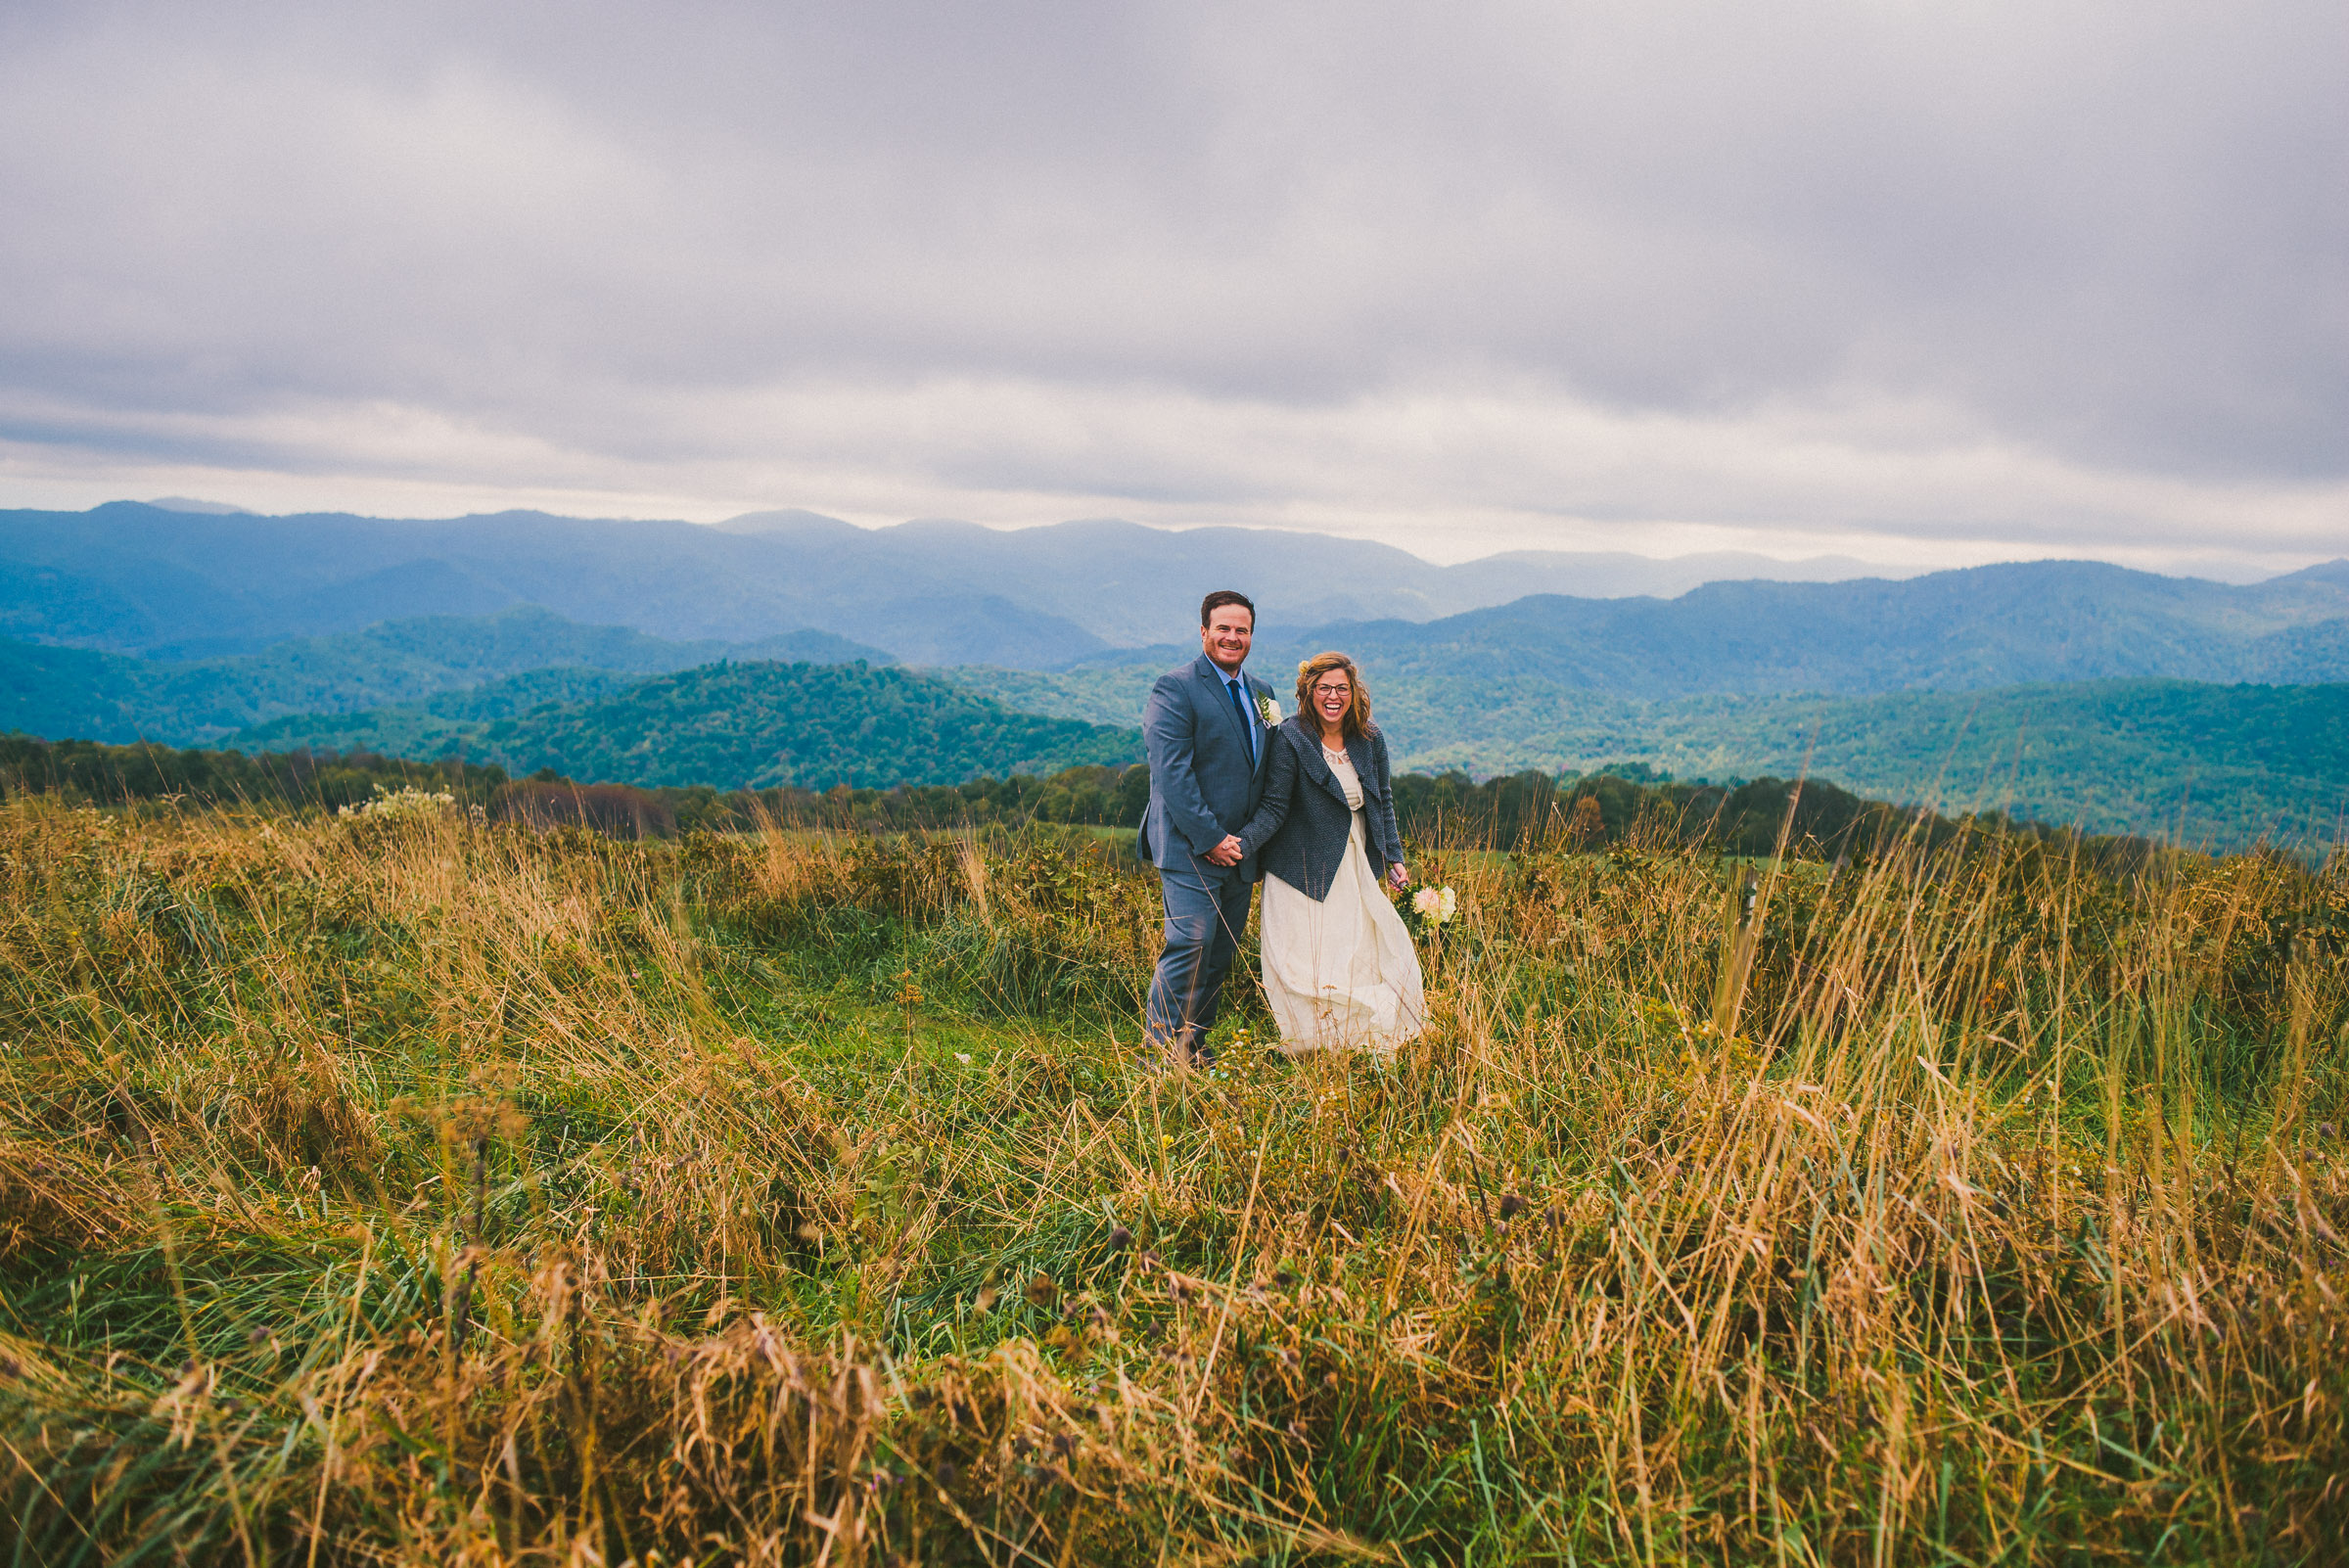 Max Patch is a popular mountain location for elopements in WNC